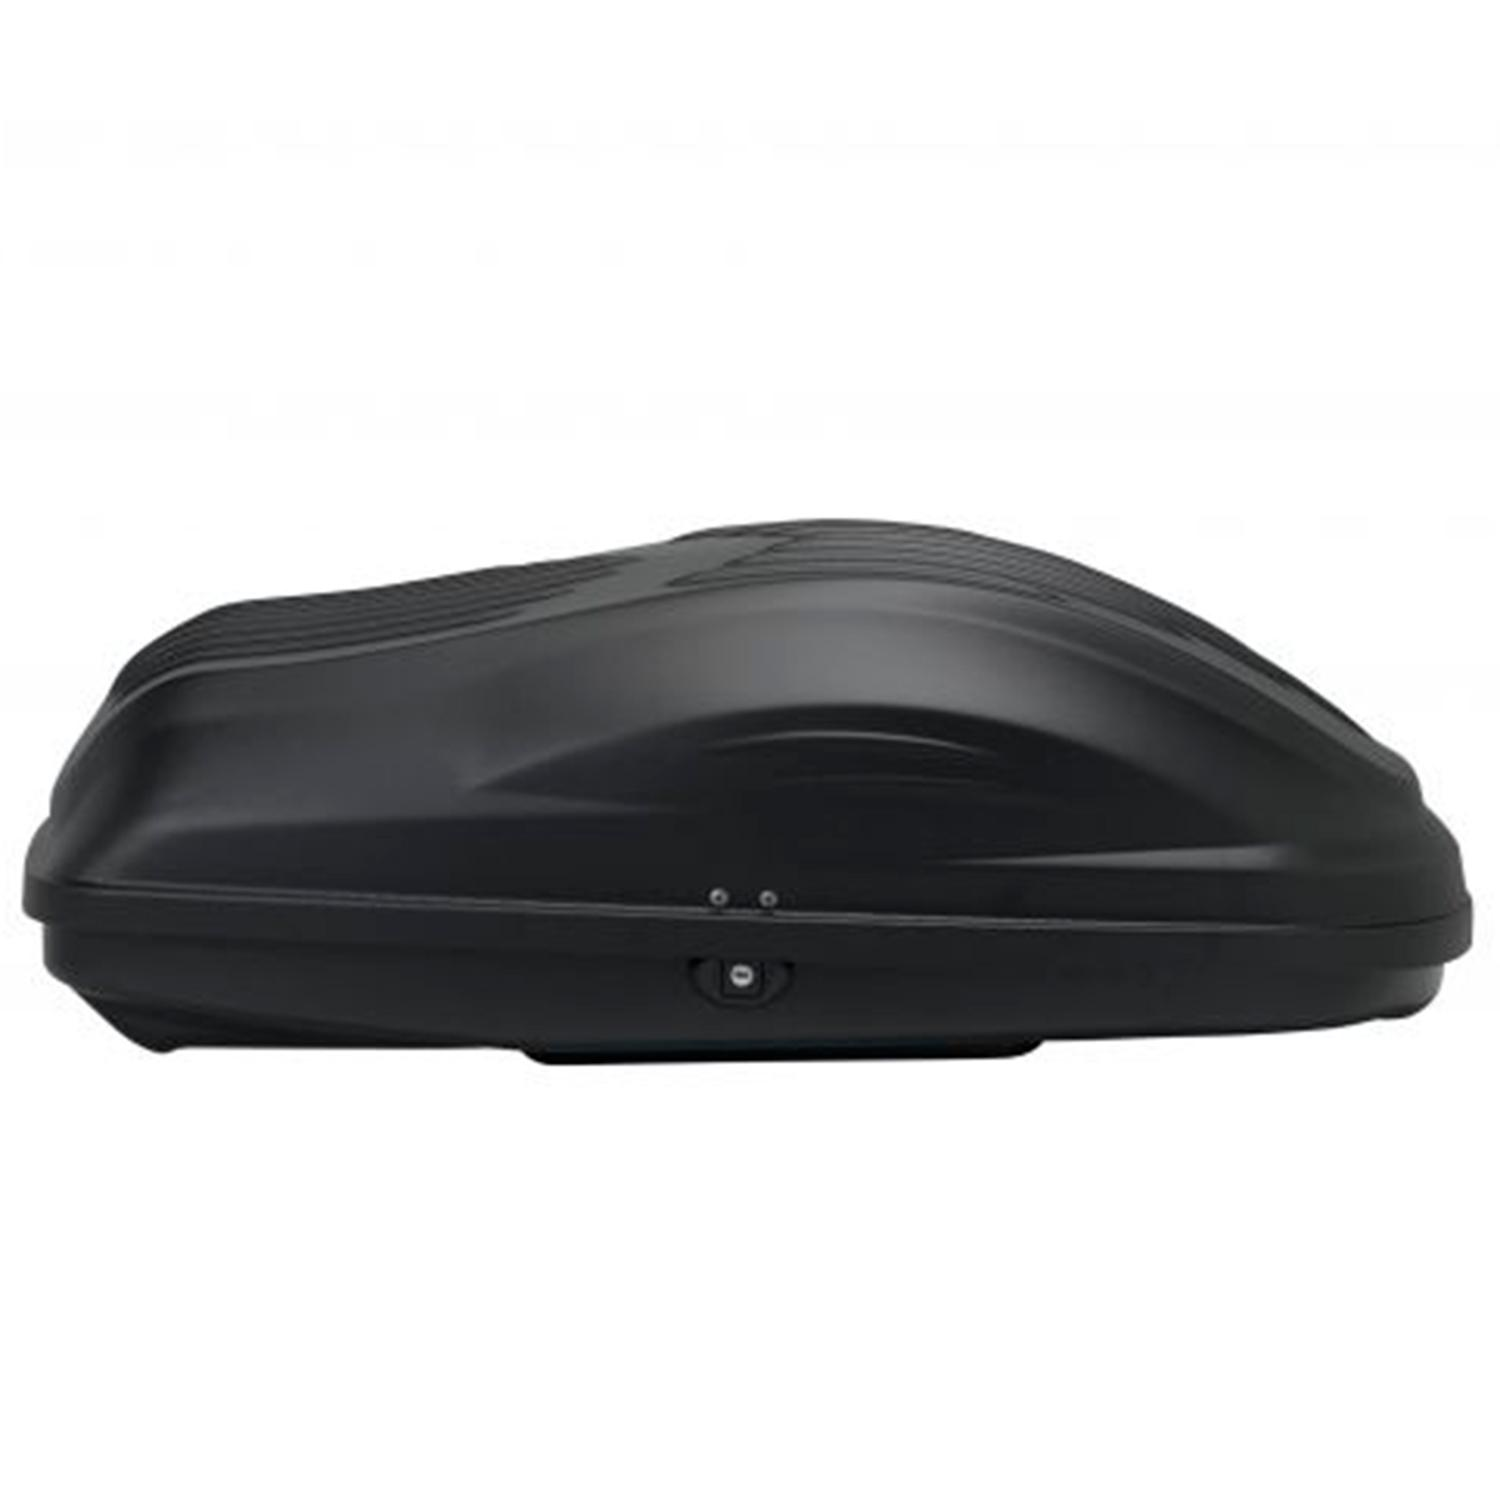 Roof box G3 22210 expert knowledge